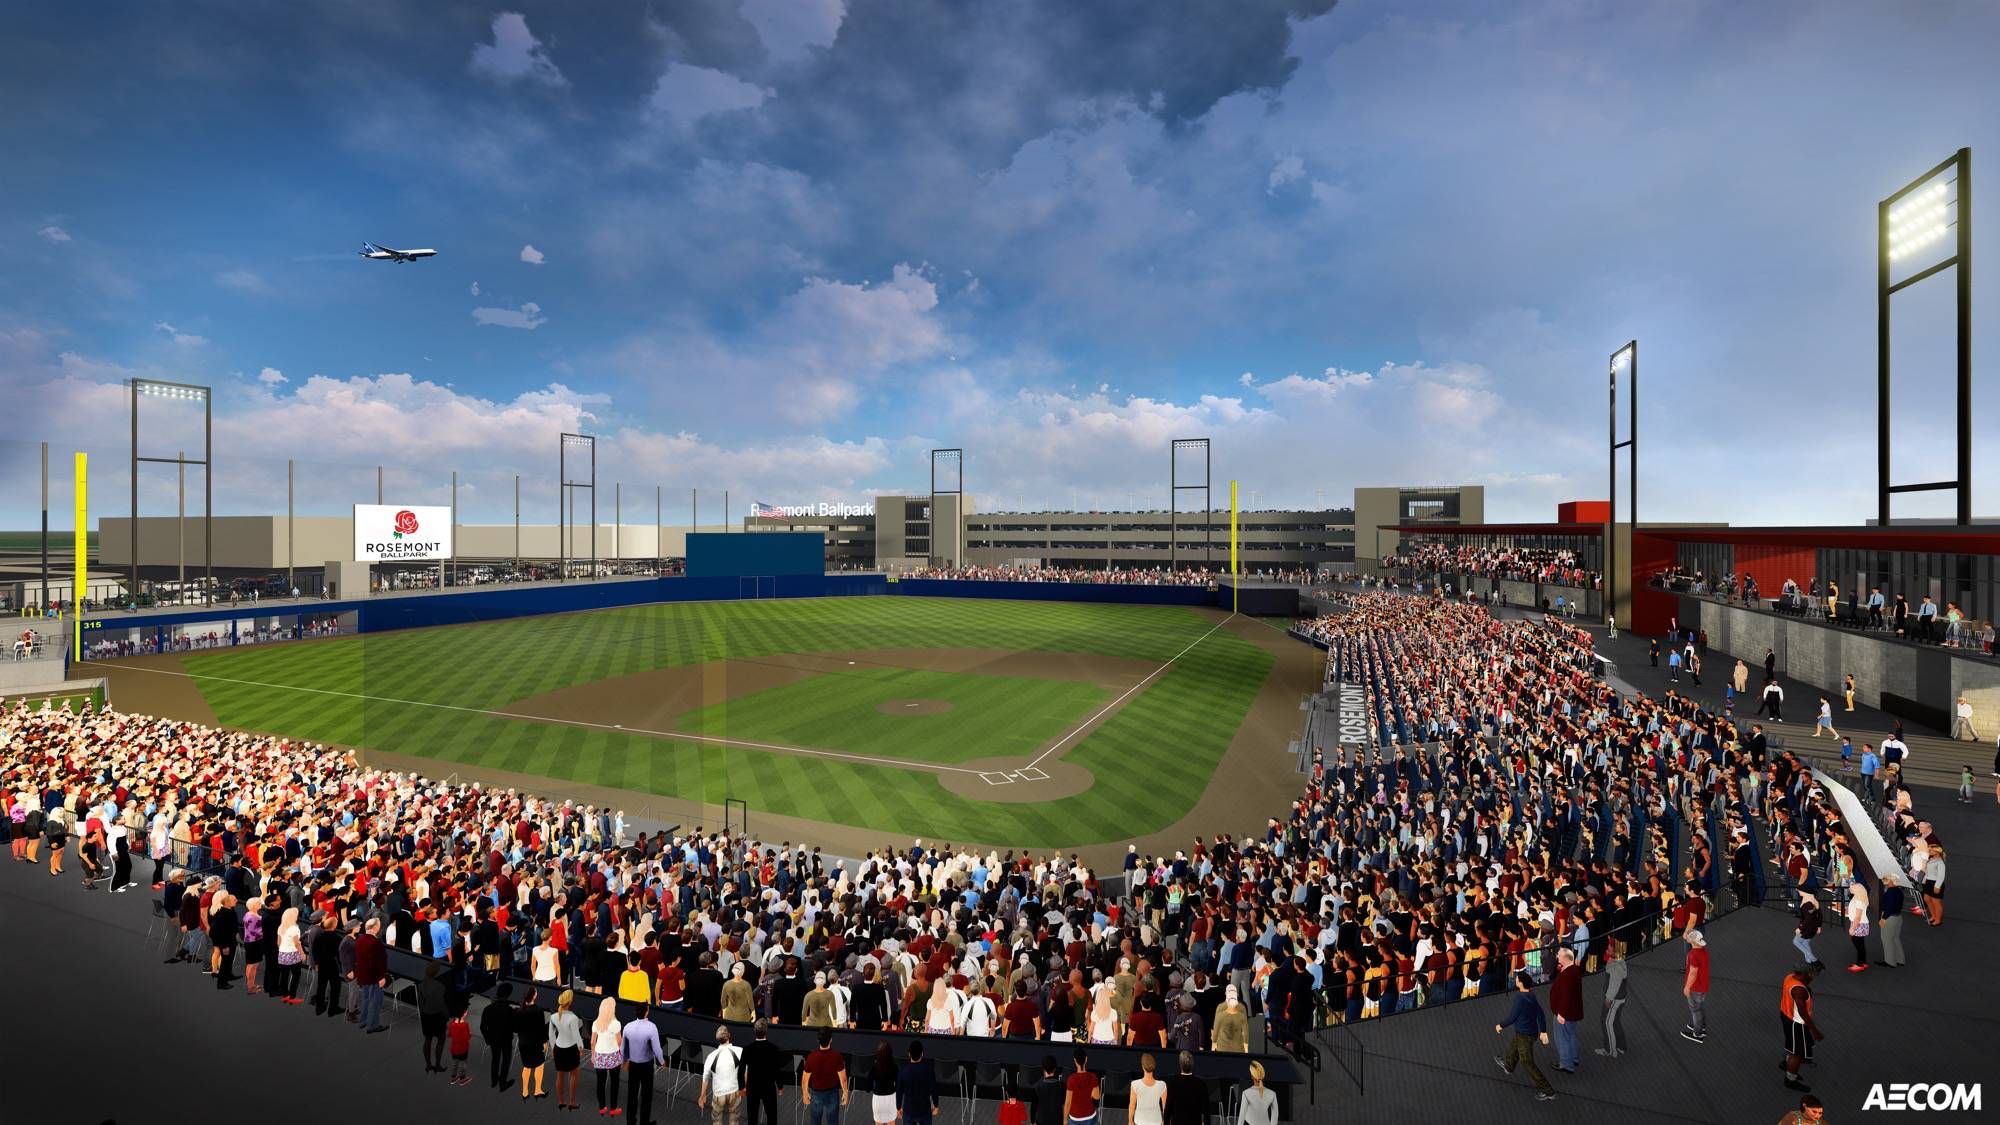 A sketch shows what the $60 million, 6,300-seat independent league baseball team stadium under construction in Rosemont will look like when complete in May 2018.